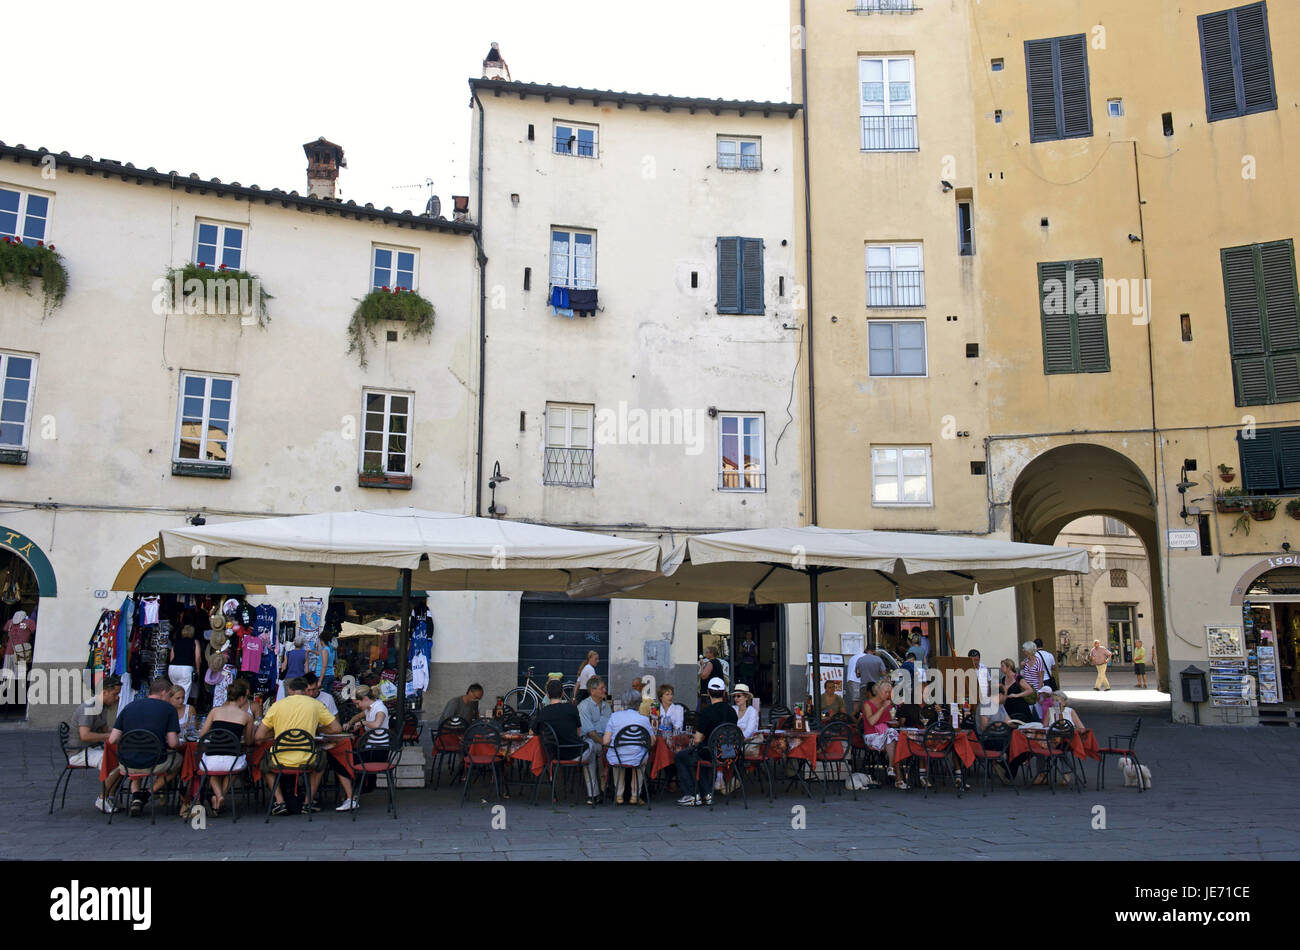 Italy, Tuscany, Lucca, Piazza del Mercato with street cafes, - Stock Image